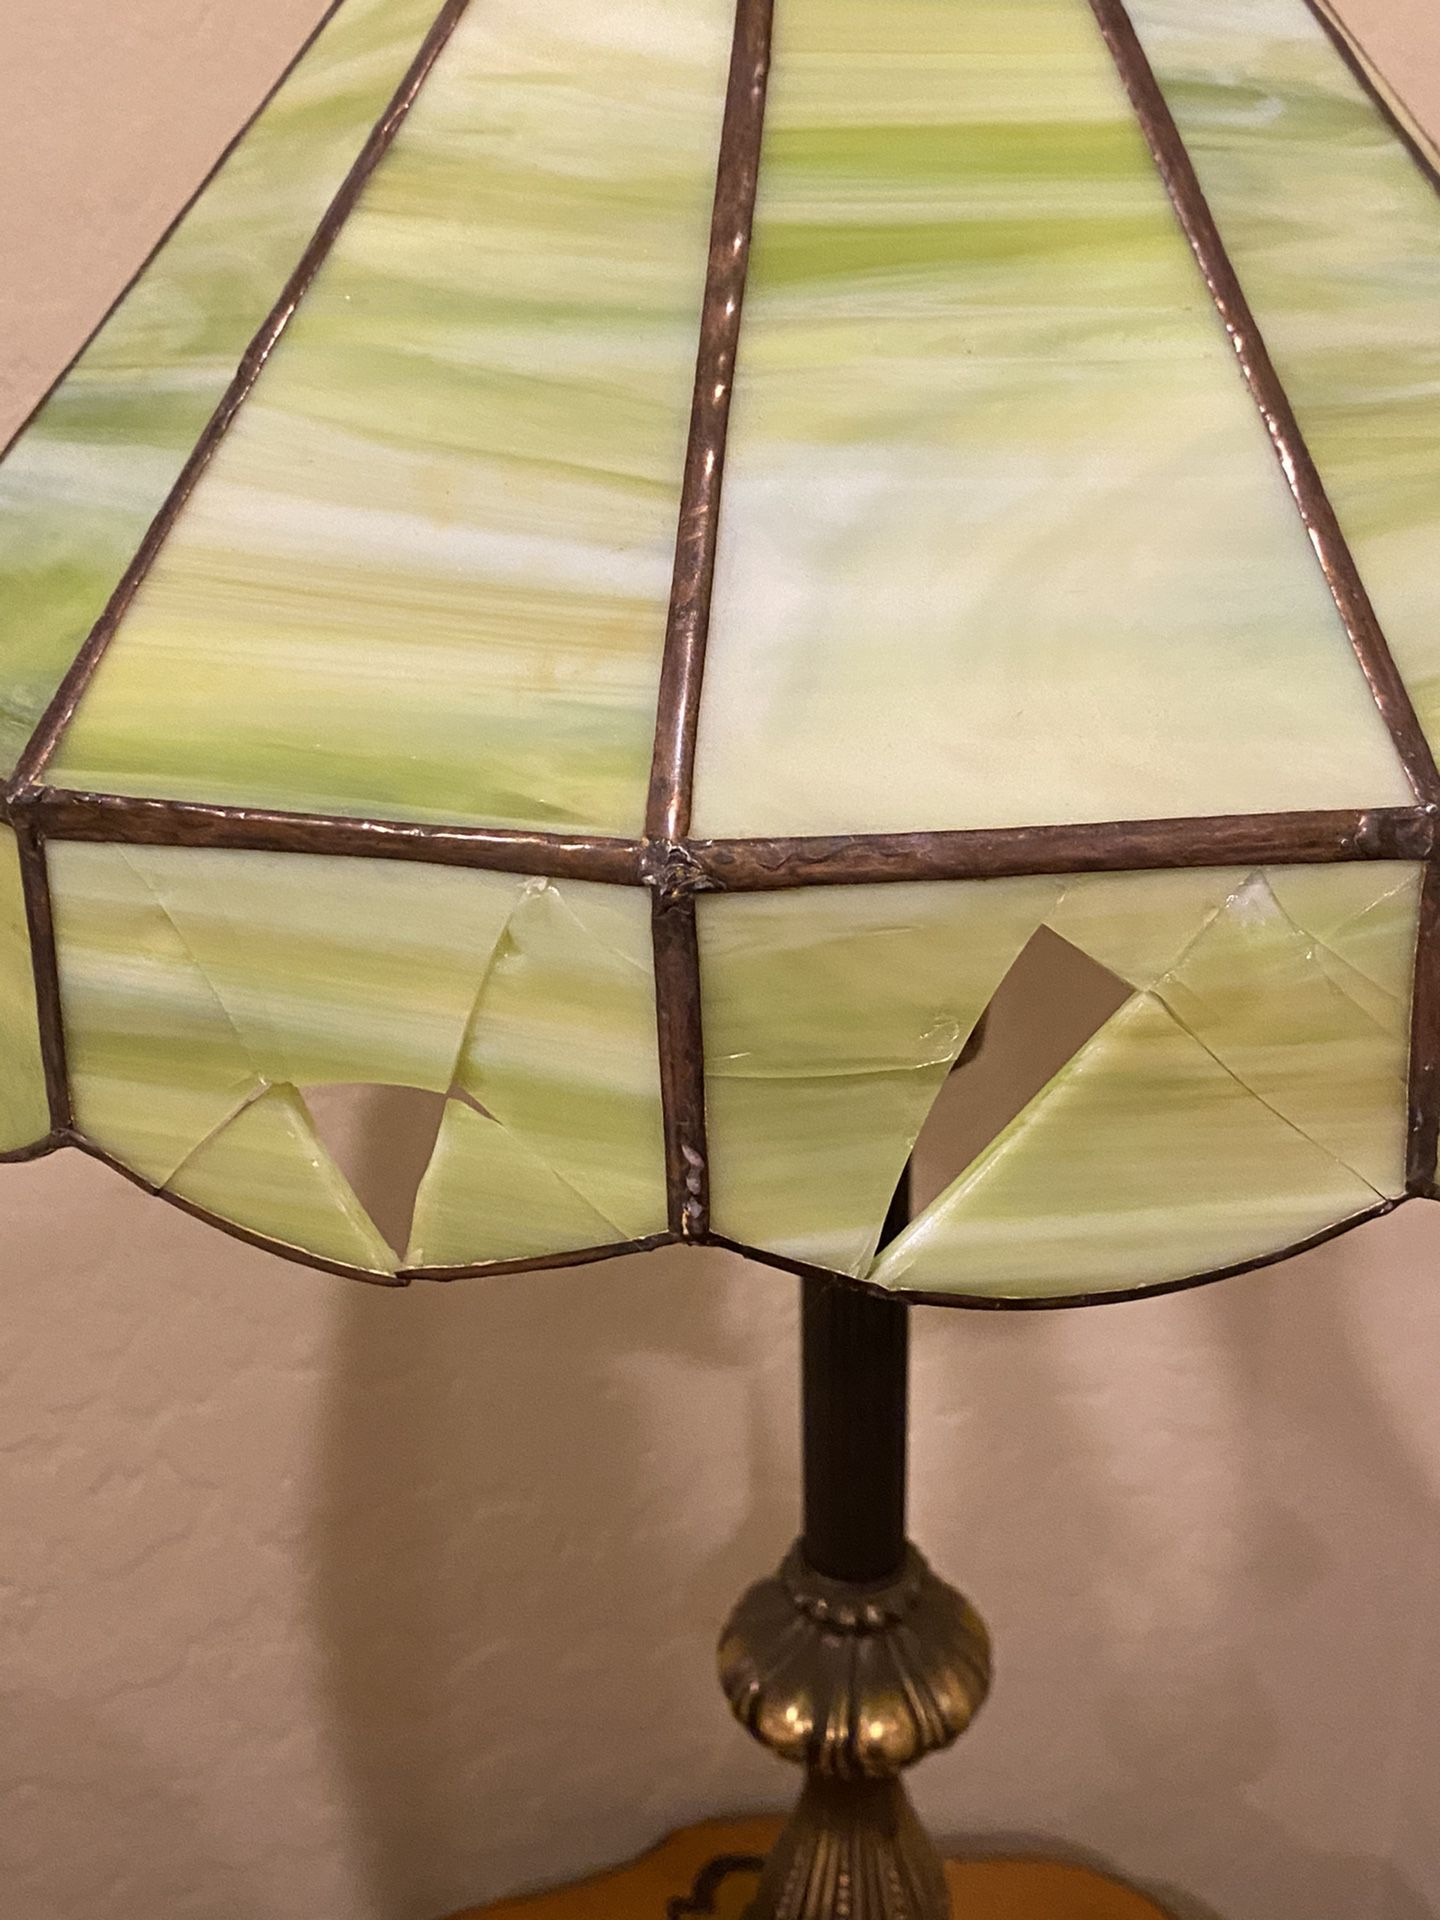 Vintage stained glass brass lamp.